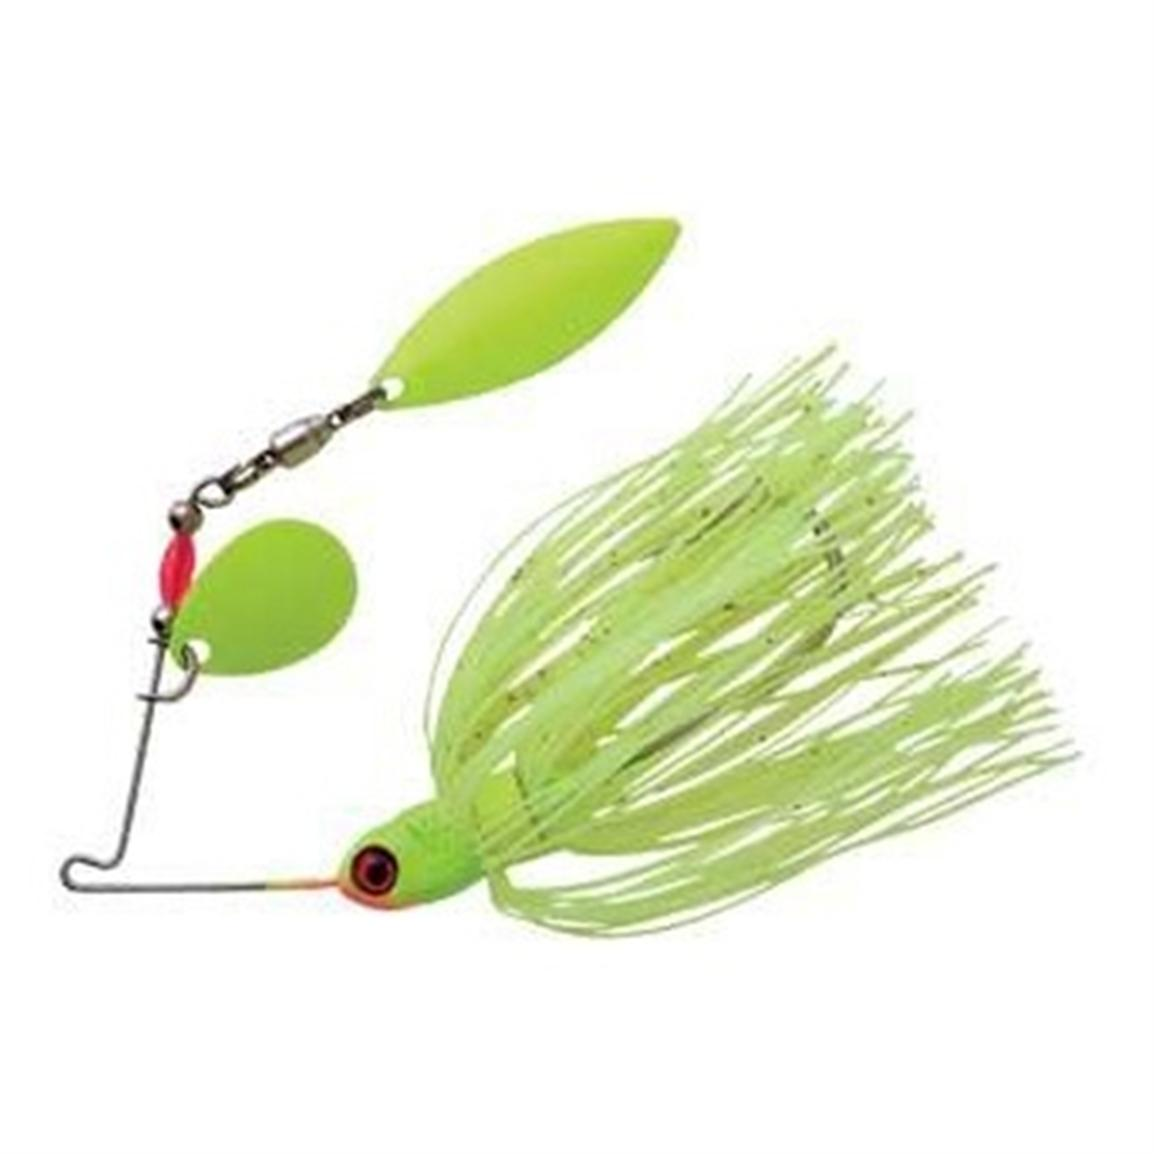 Booyah pond magic lure shad 200978 spinnerbaits at sportsman 39 s guide Best lures for pond fishing